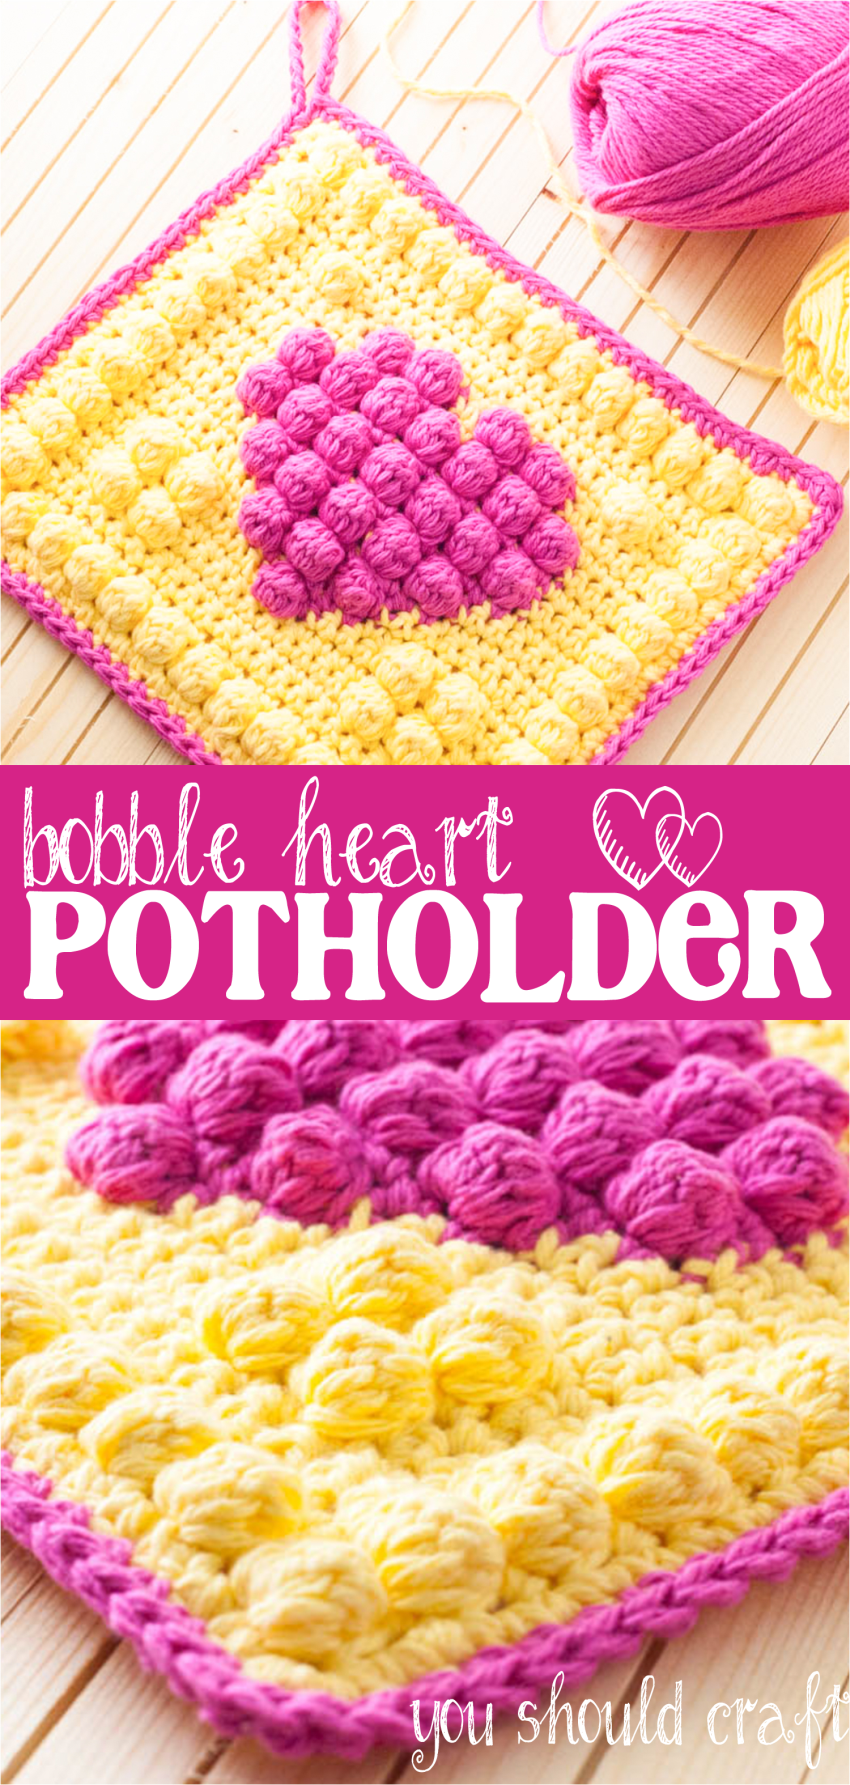 Free Crochet Pattern for the Bright & Bubbly Bobble Heart Potholder | YouShouldCraft.com